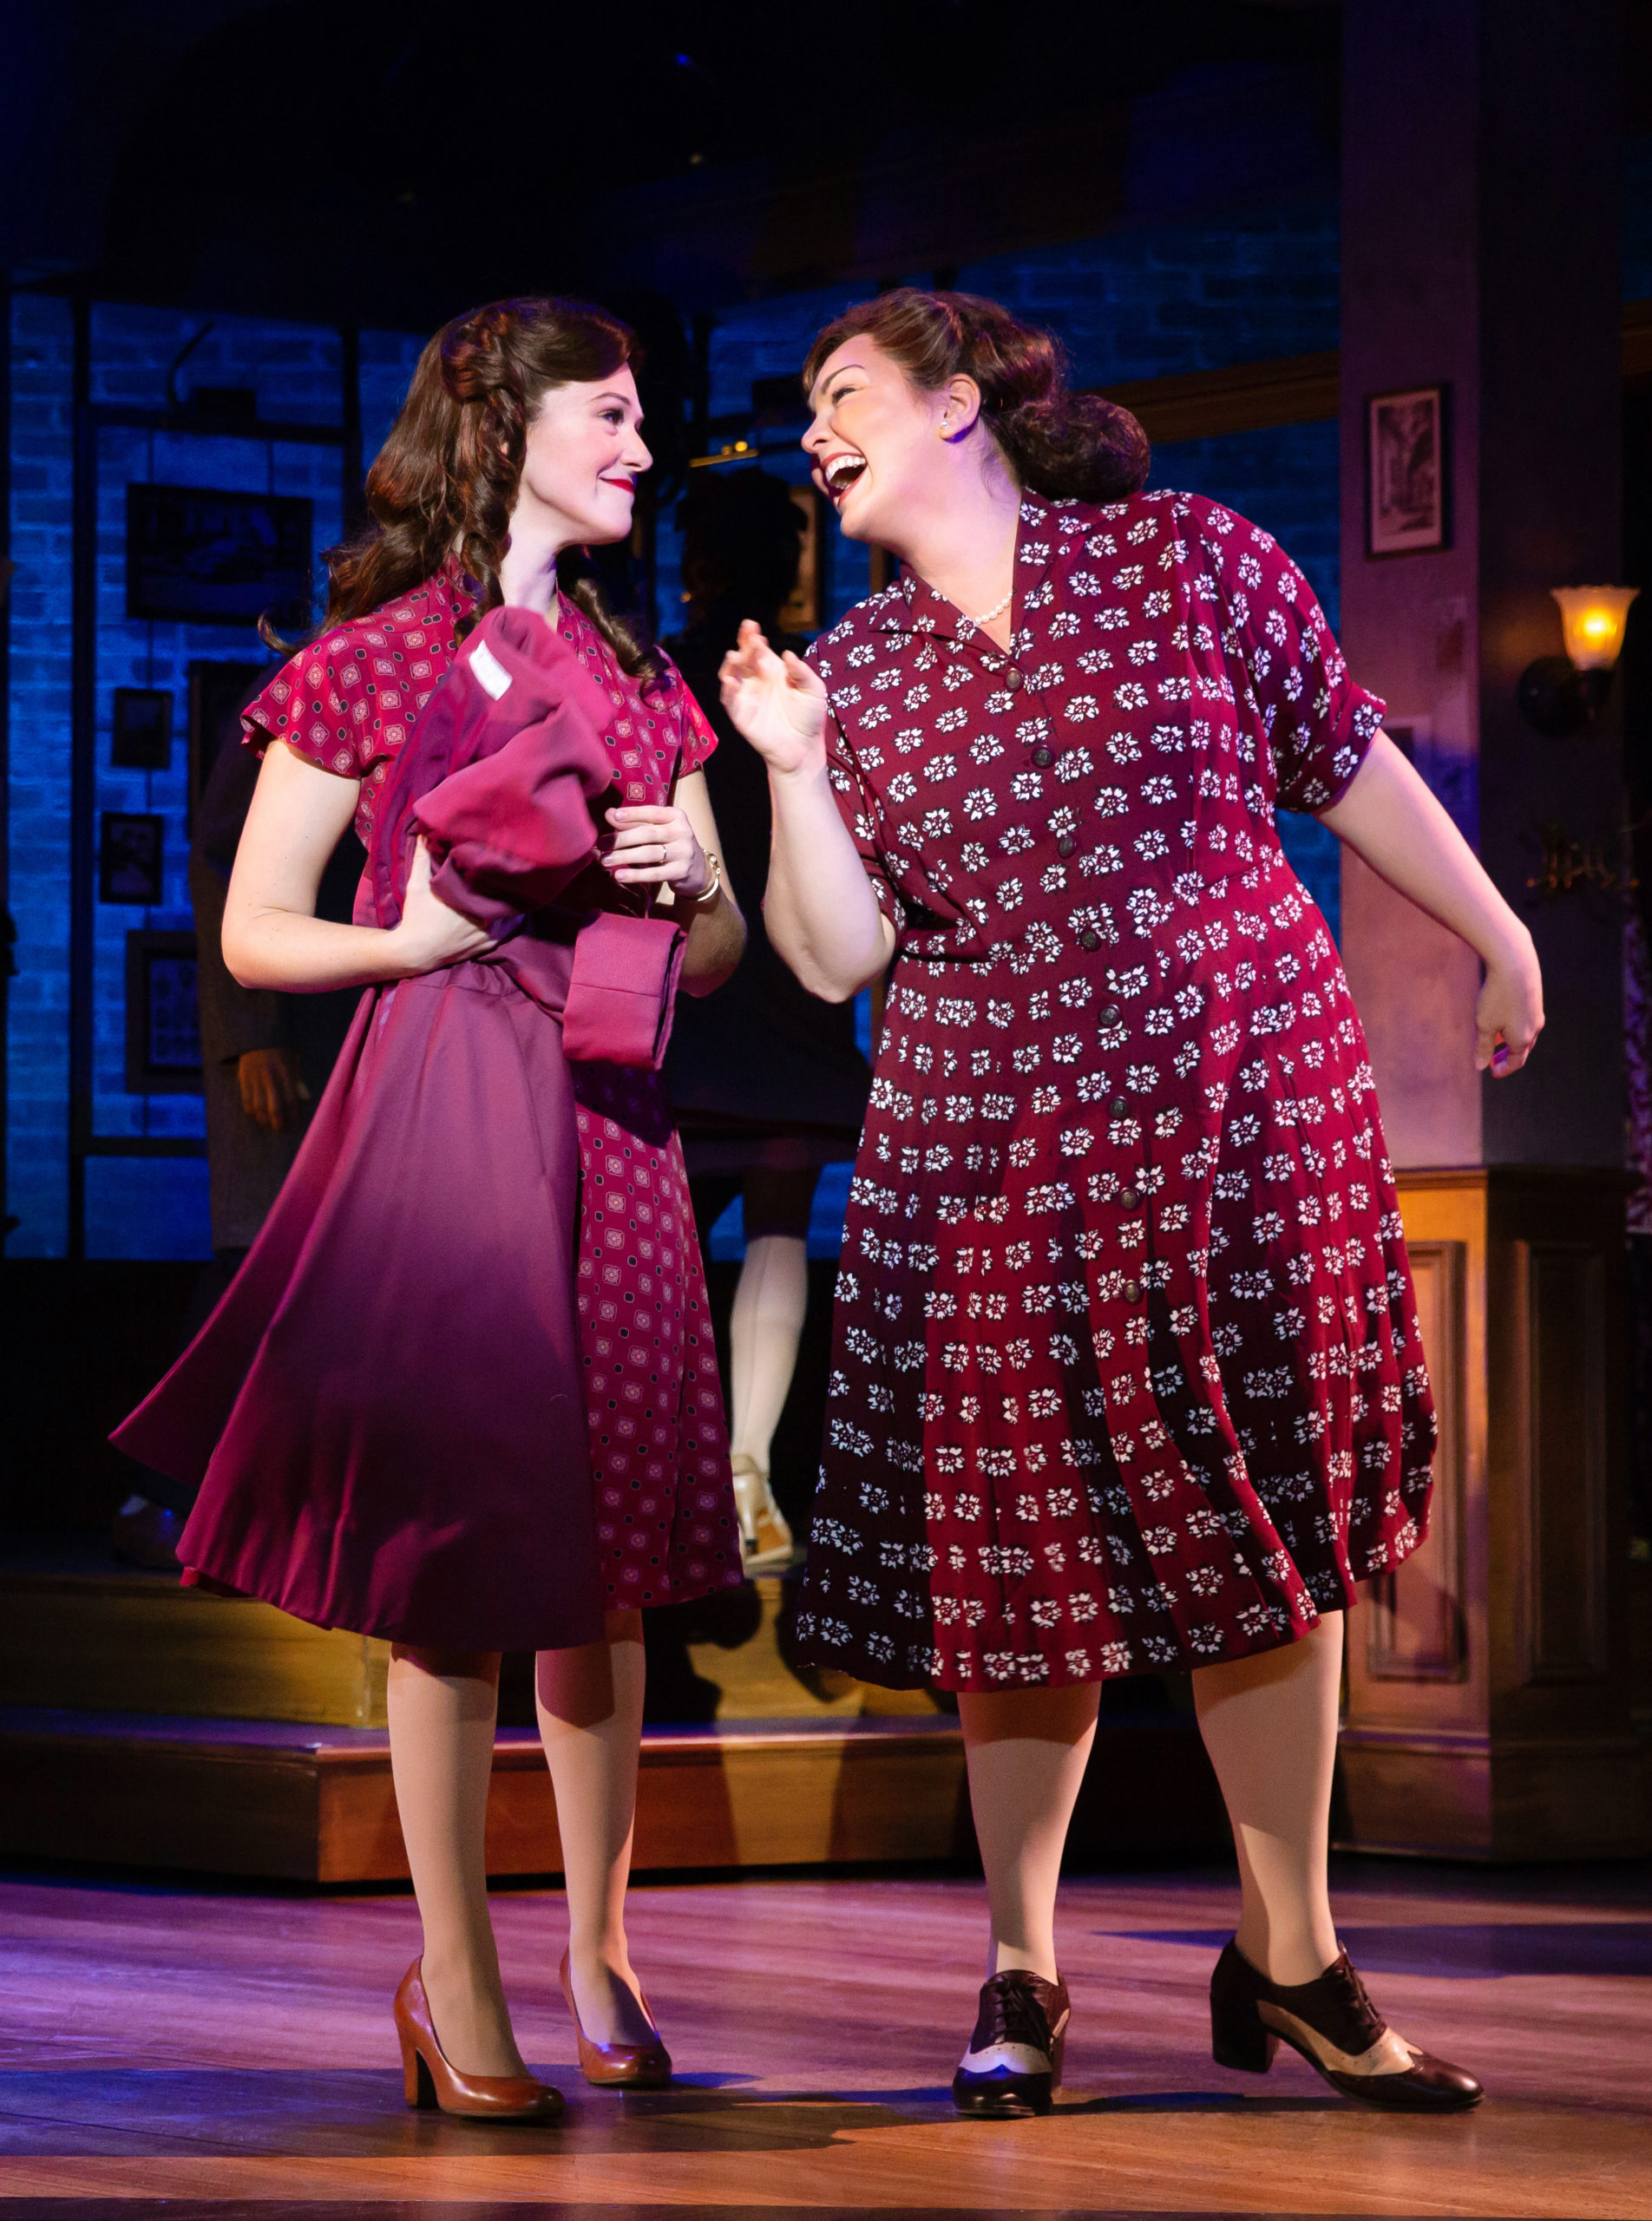 Jennifer Elizabeth Smith and Roxy York in BANDSTAND presented by Broadway On Tour Apr. 7 – 12, 2020 at Memorial Auditorium. Photo by Jeremy Daniel.